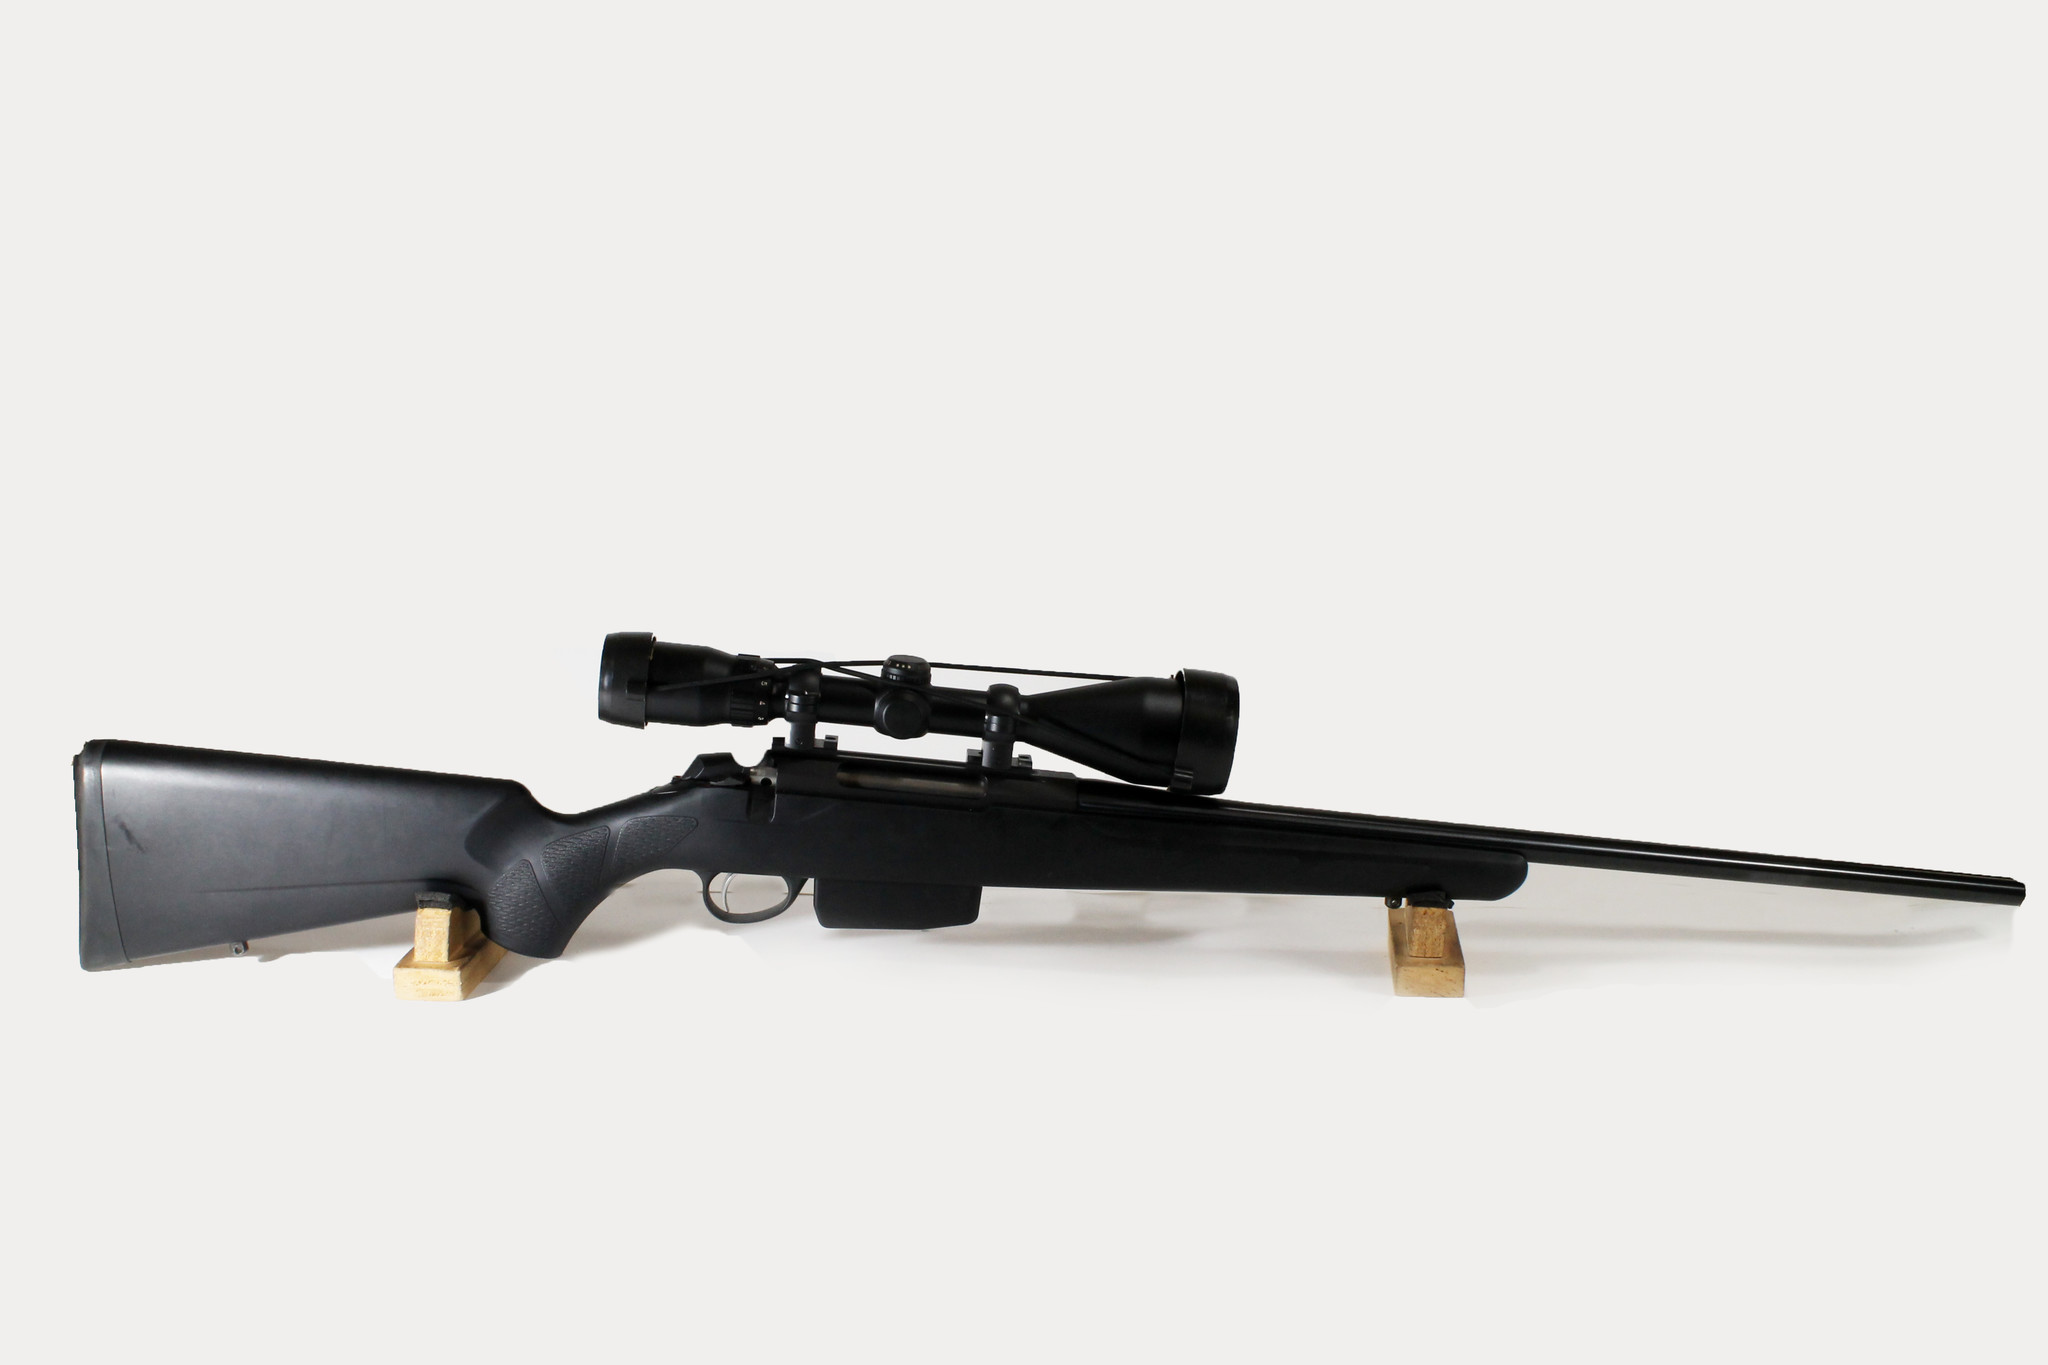 UG-13116 TIKKA T3 SYNTHETIC 223 REM, WITH BUSHNELL 3200 ELITE 3-10X50 MM SCOPE, 2 MAGS